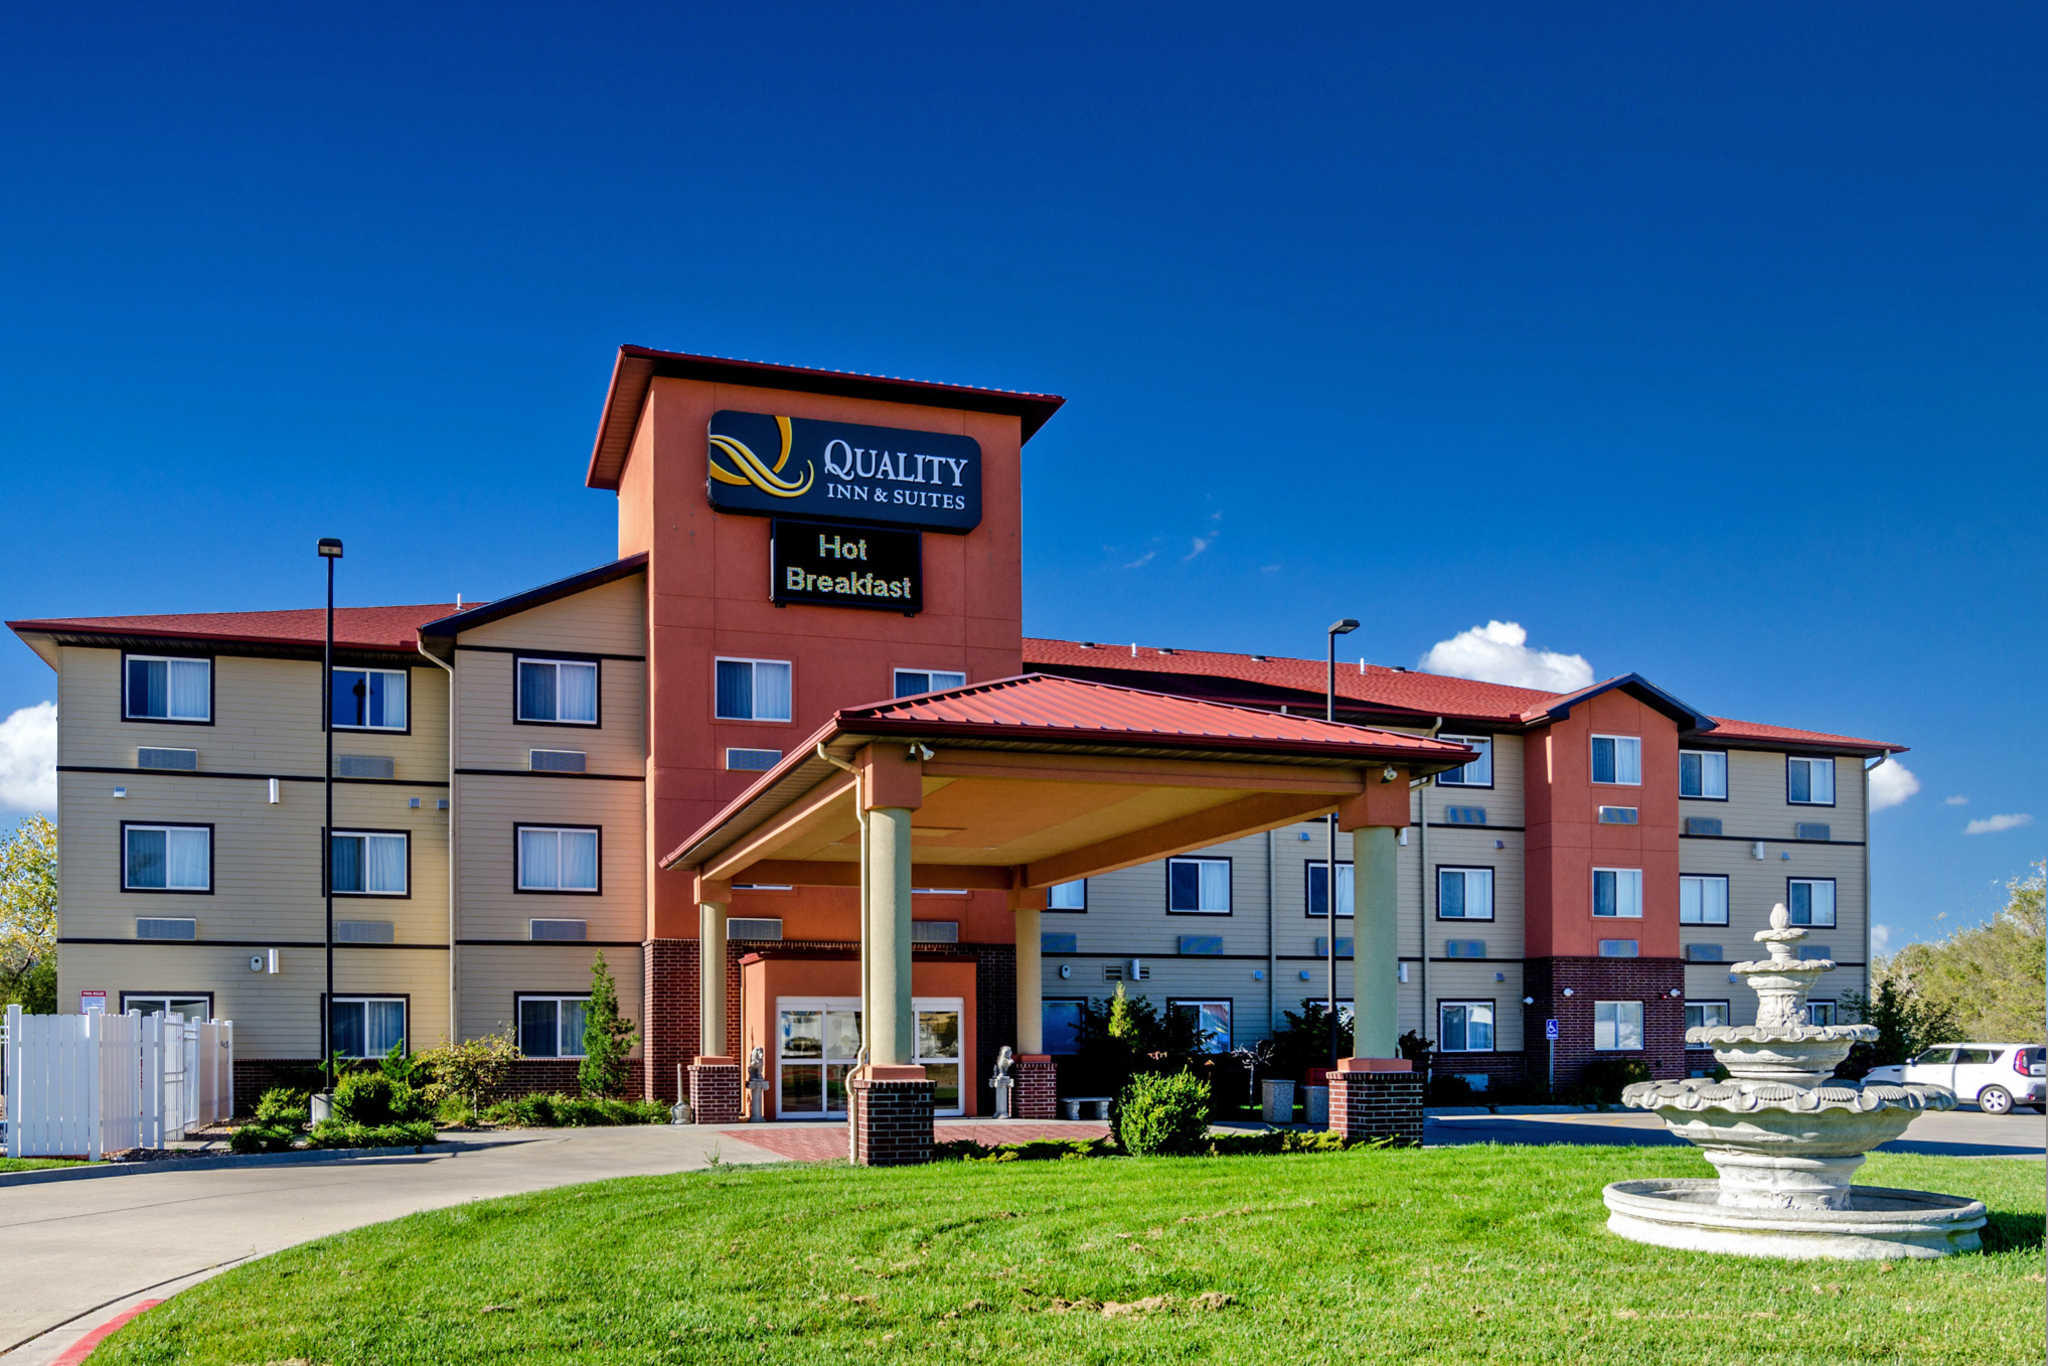 Coupon codes for quality inn and suites